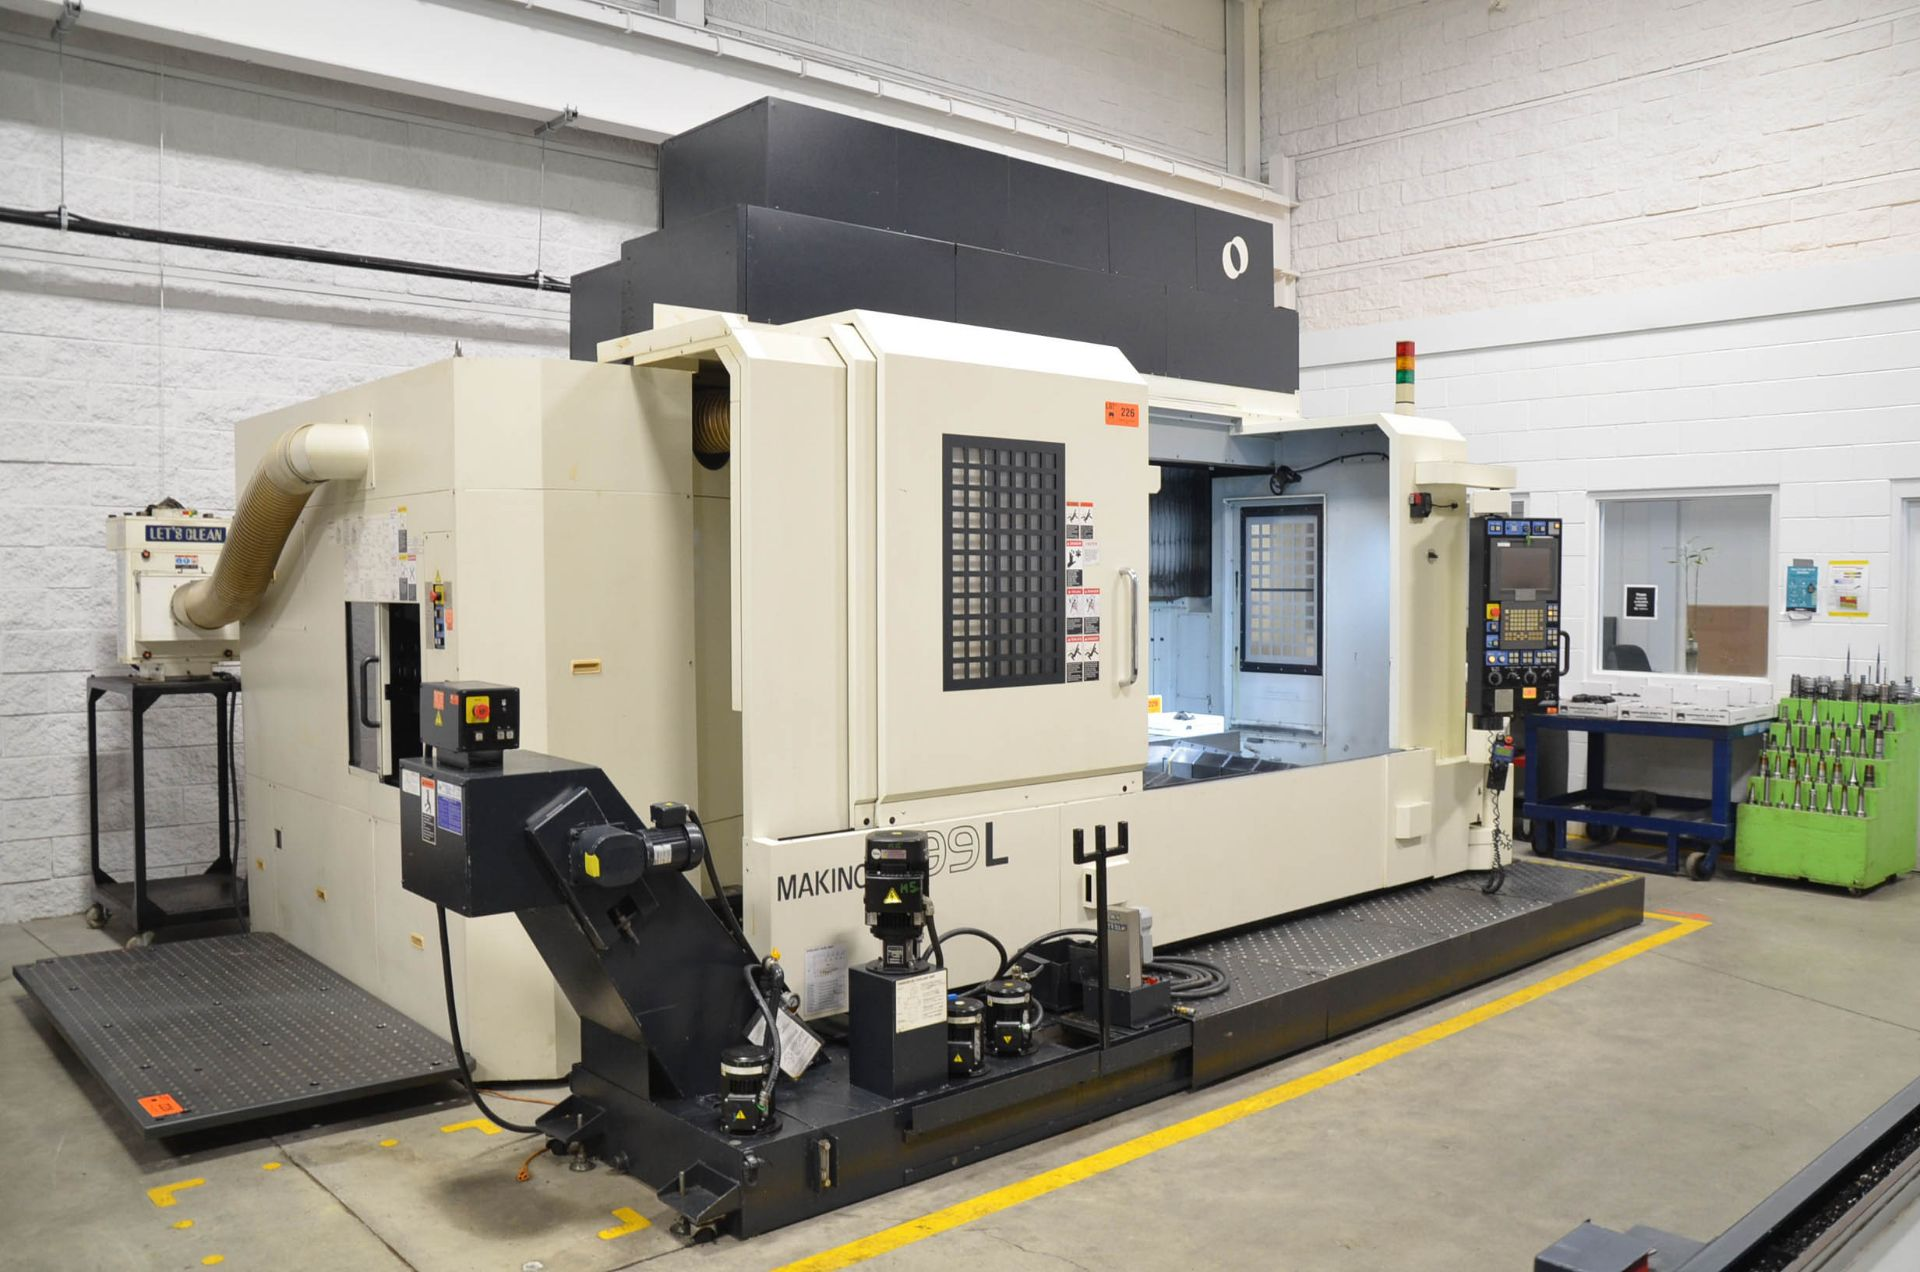 MAKINO (2008) V99L(#50) CNC VERTICAL MACHINING CENTER WITH MAKINO PROFESSIONAL 5 CNC CONTROL, 39. - Image 2 of 12